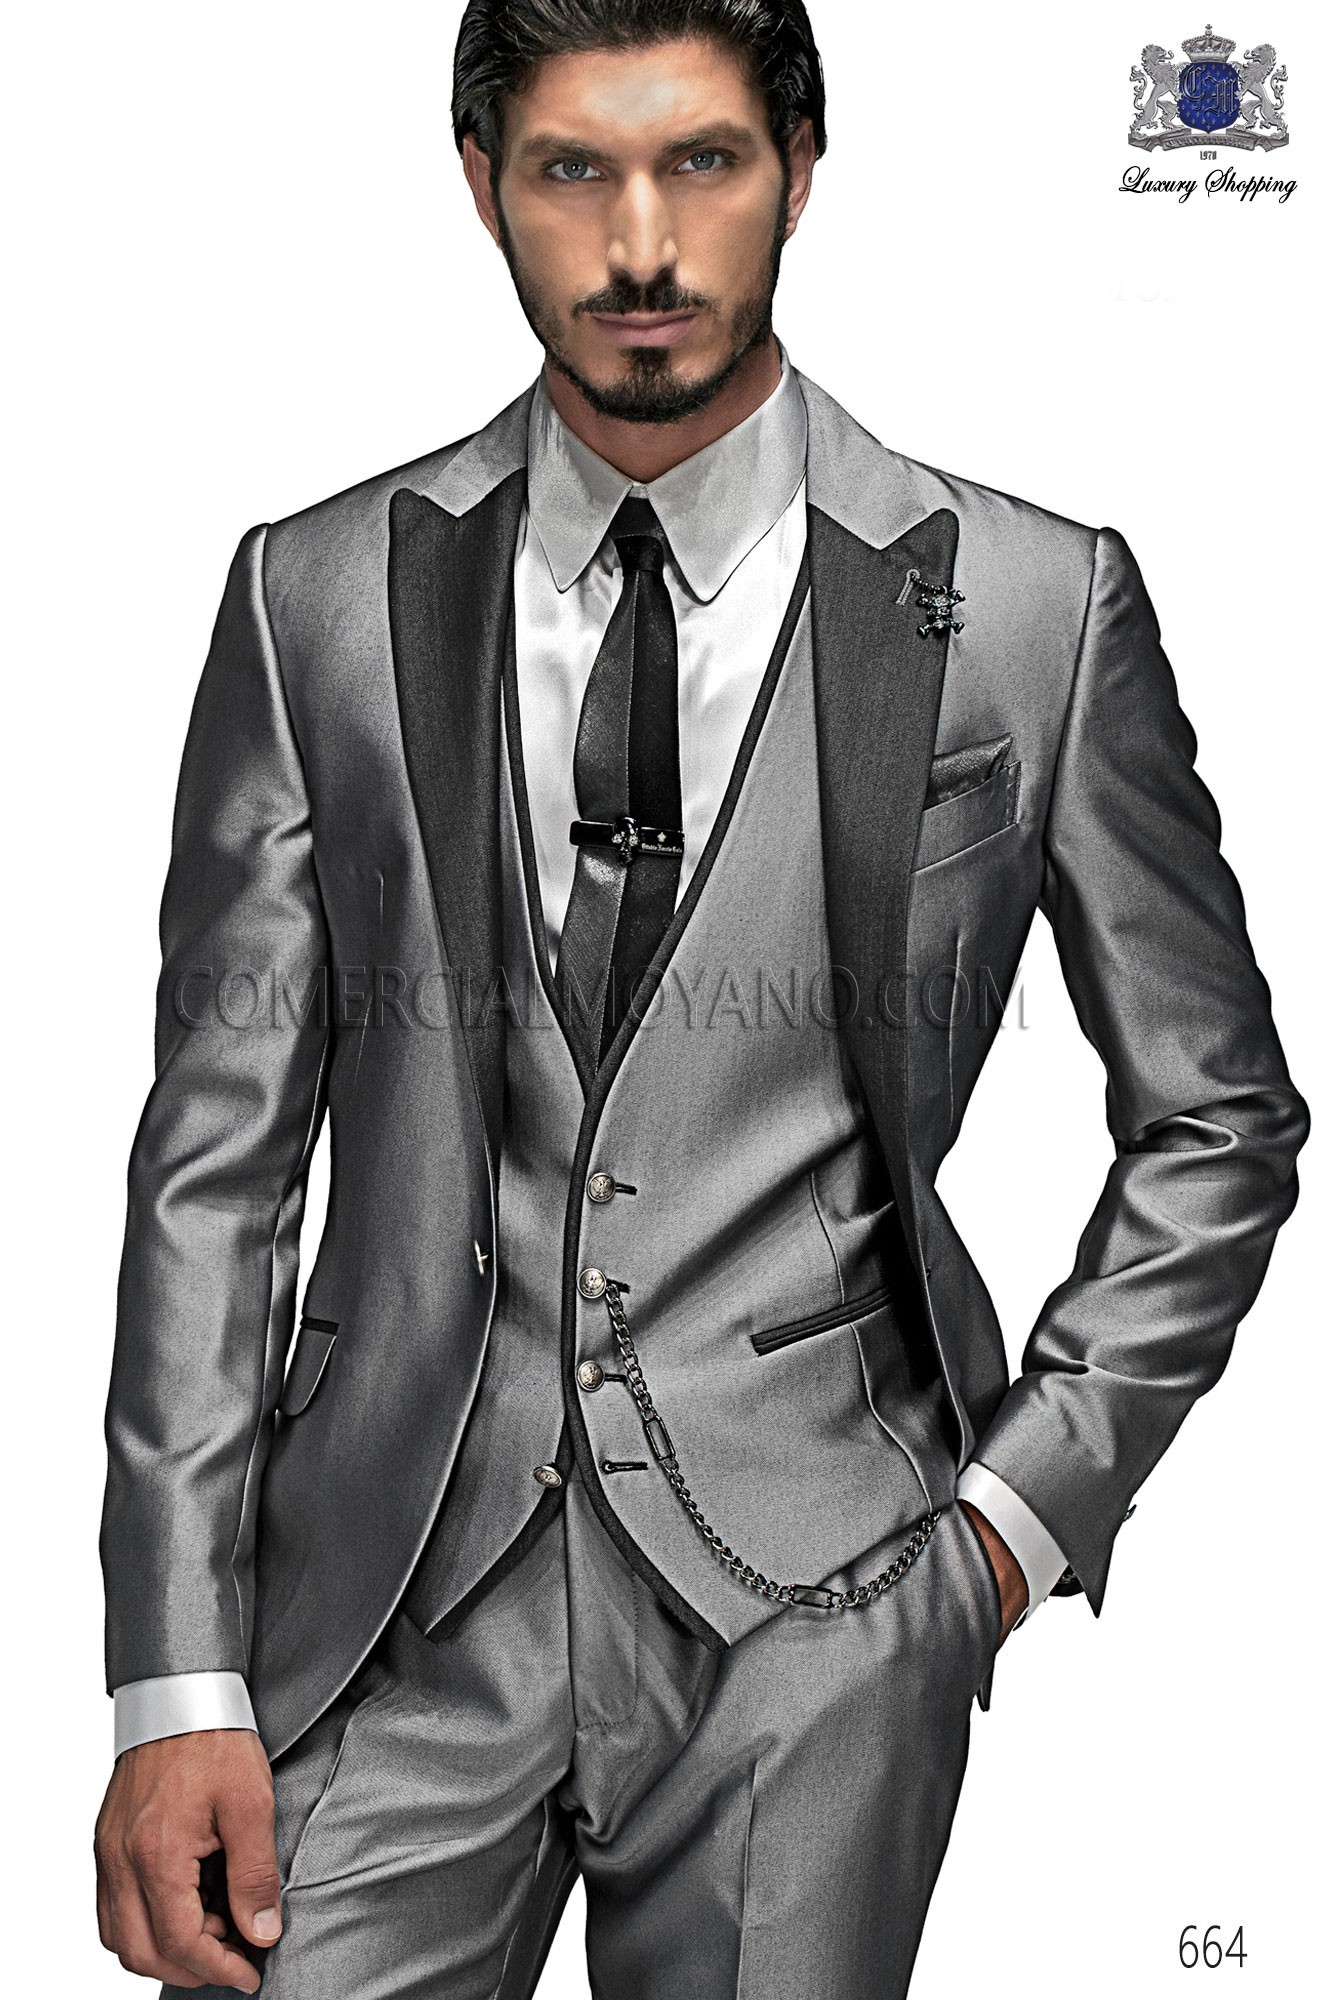 Emotion anthracite gray men wedding suit model 664 Ottavio Nuccio Gala